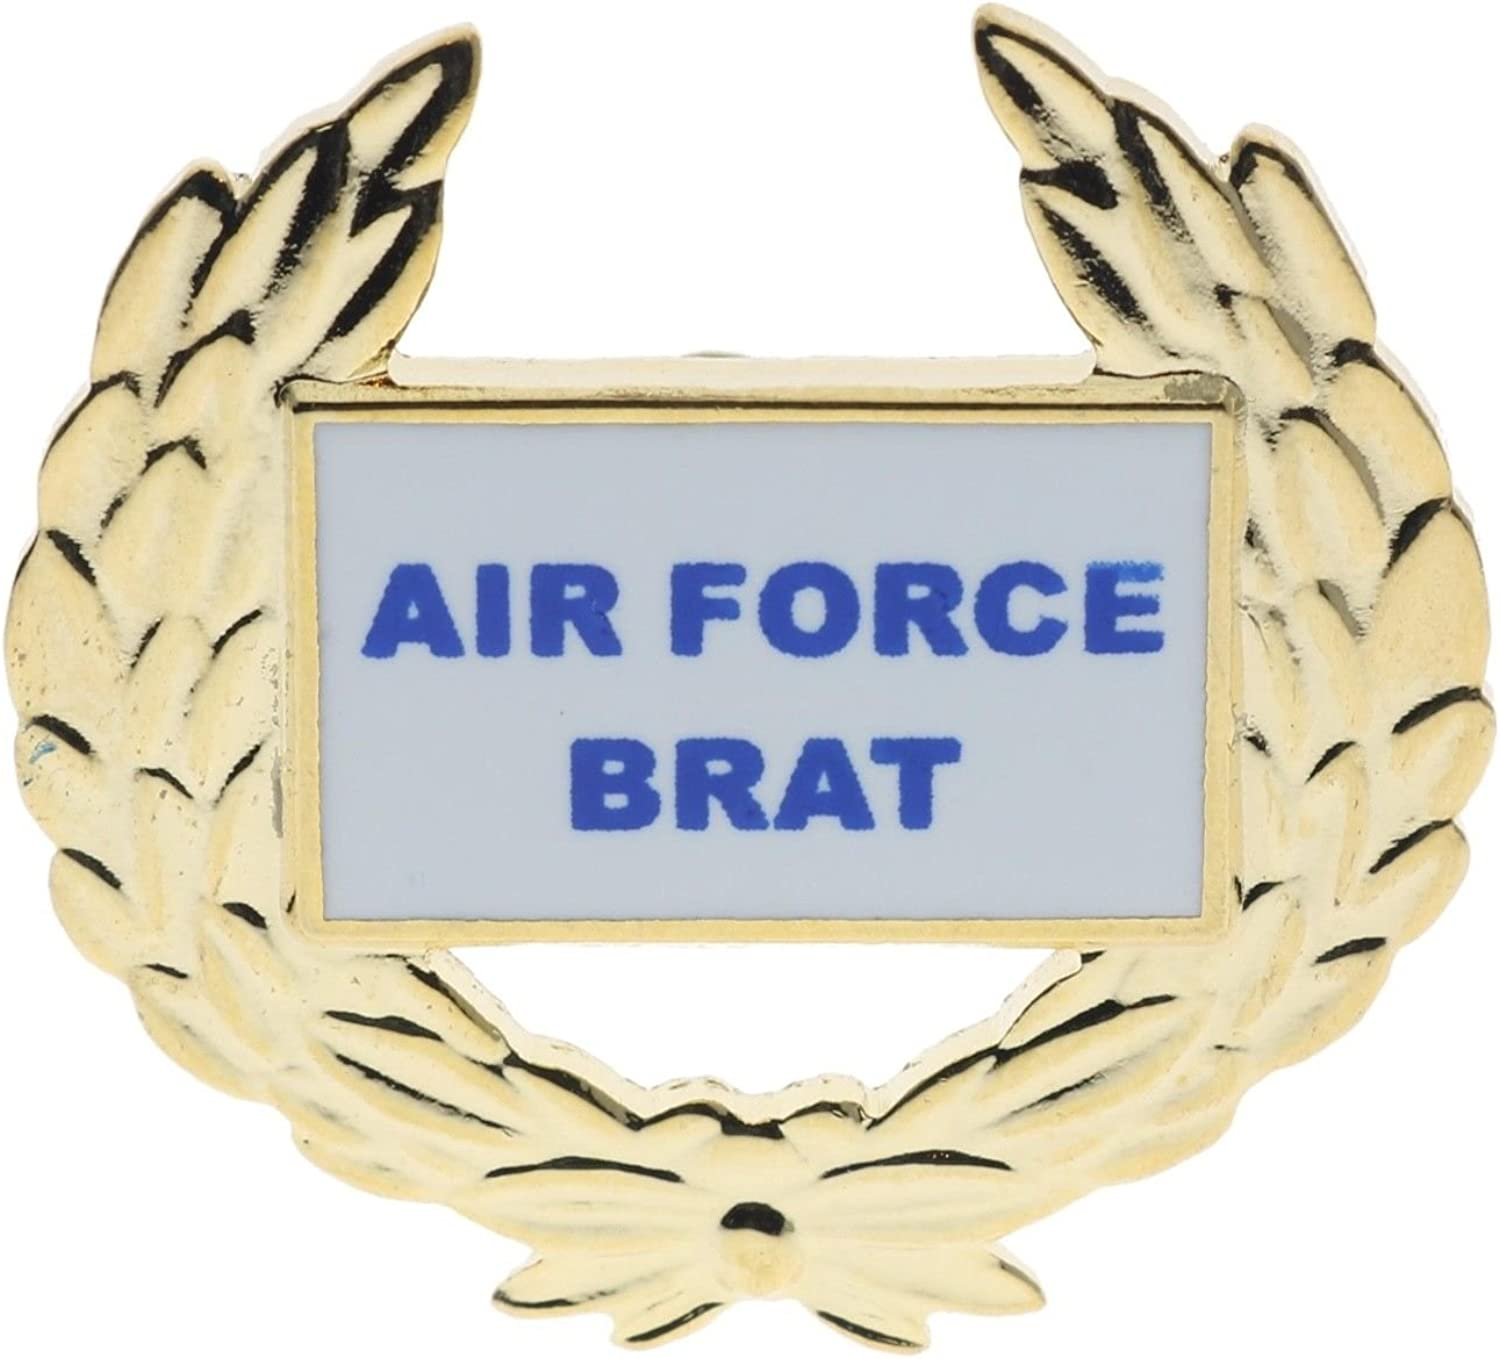 USAF Air Force Brat Wreath 1 1//8 inch pin Gold Tone color H14496D143